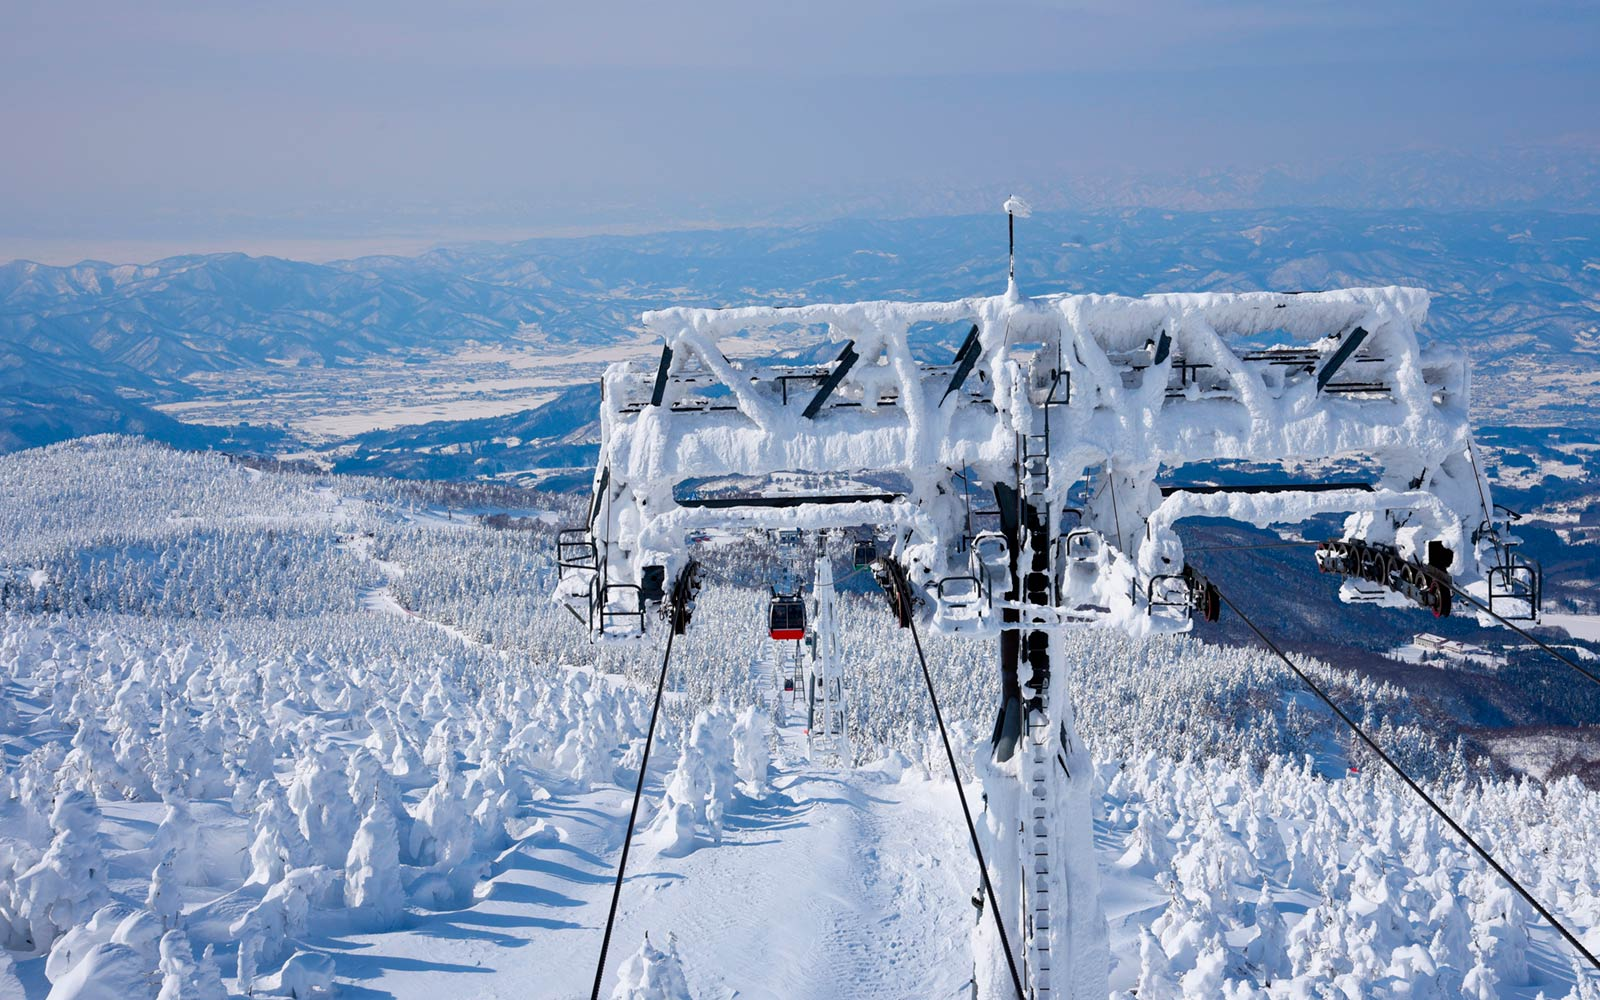 Ski Lift at Zao Ski Resort in Japan